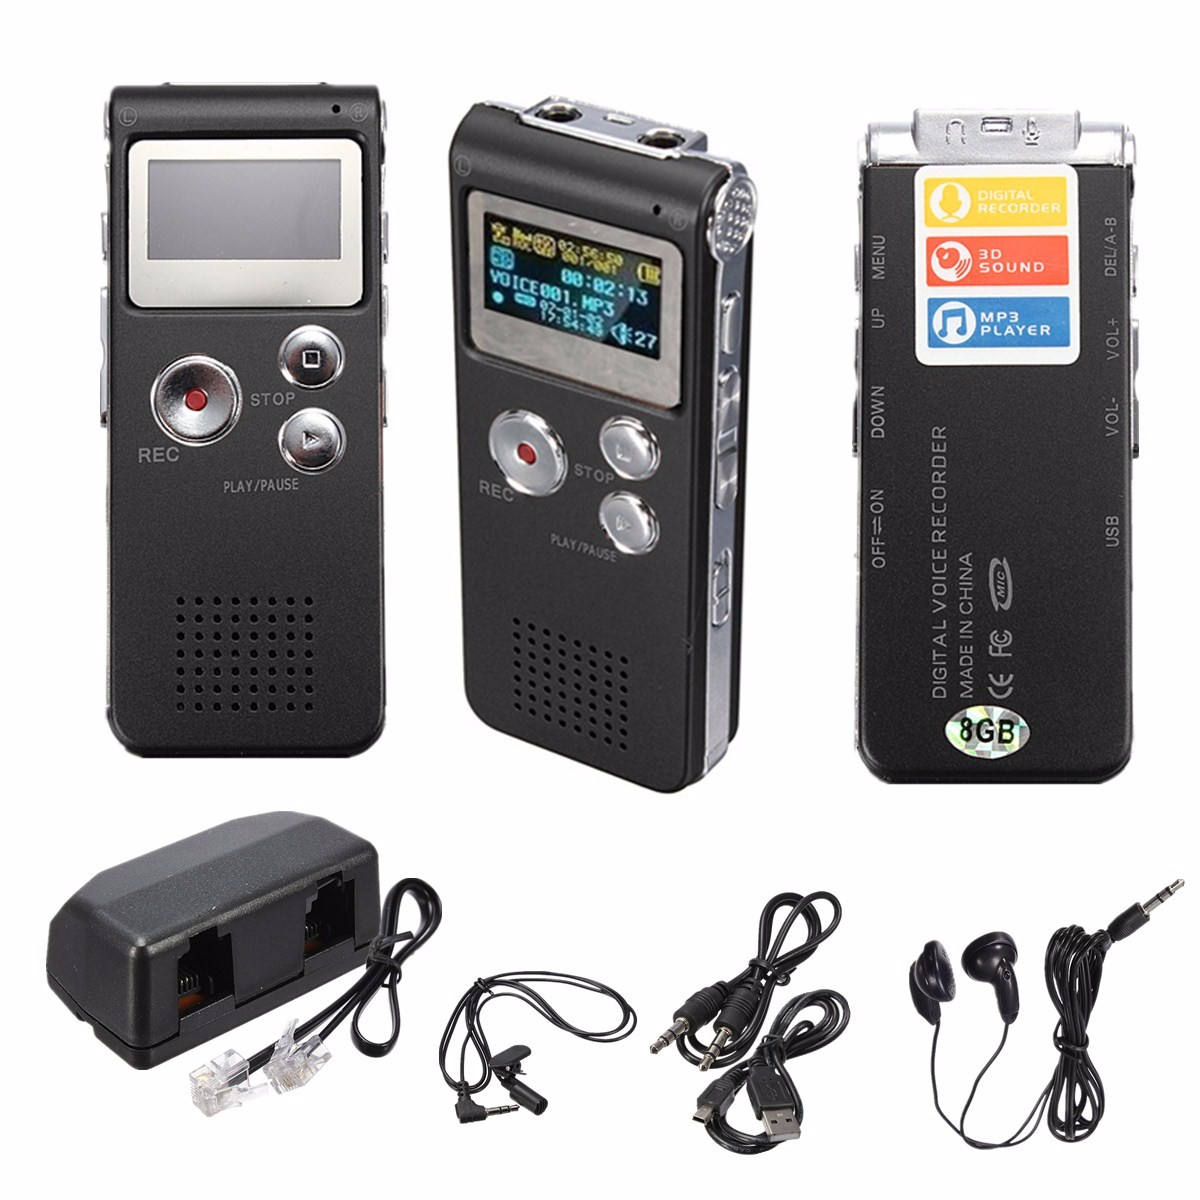 8GB Rechargeable 3D HD Sound Digital Audio Voice Recorder Dictaphone Telephone MP3 Player Meeting Built in Microphone Speaker Earphone 650 Hours Noise Reduction